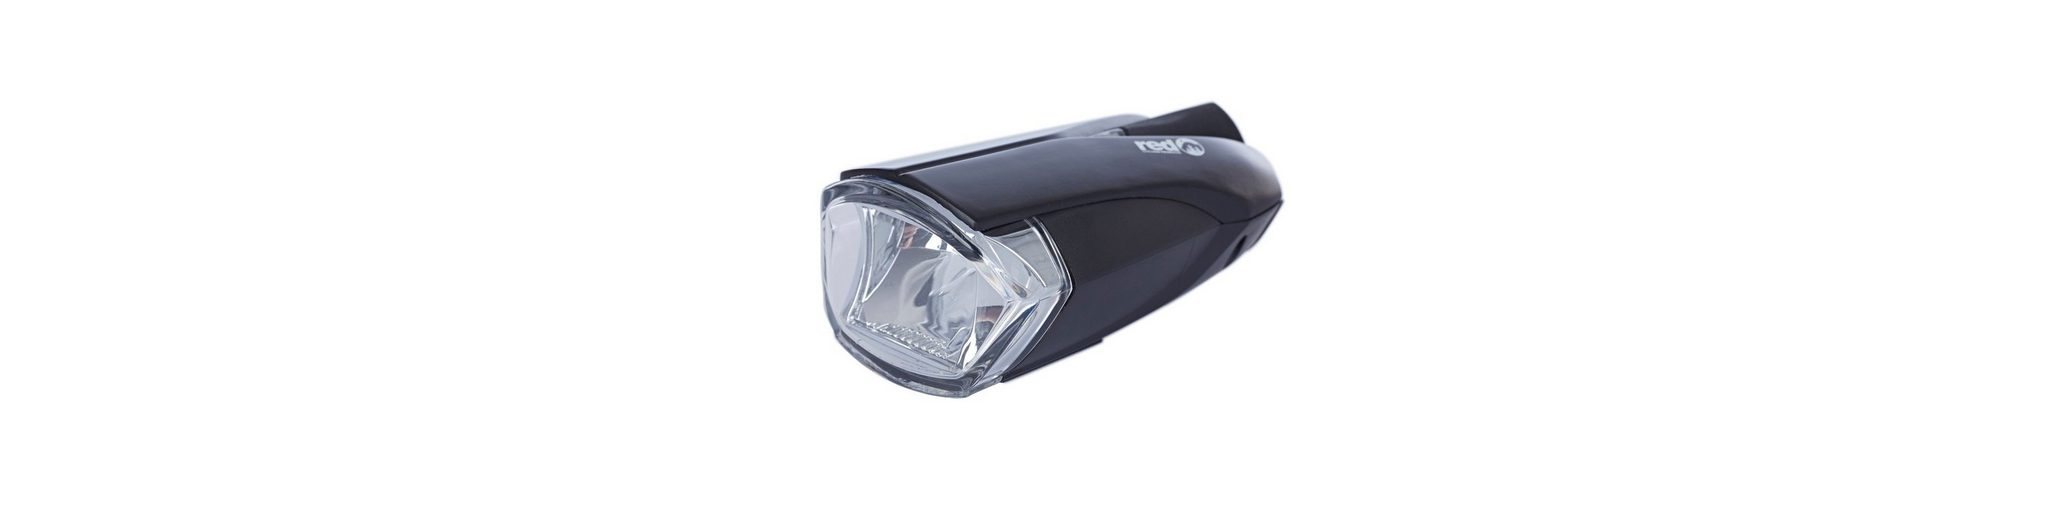 Red Cycling Products Fahrradbeleuchtung »Power LED Front Scheinwerfer«